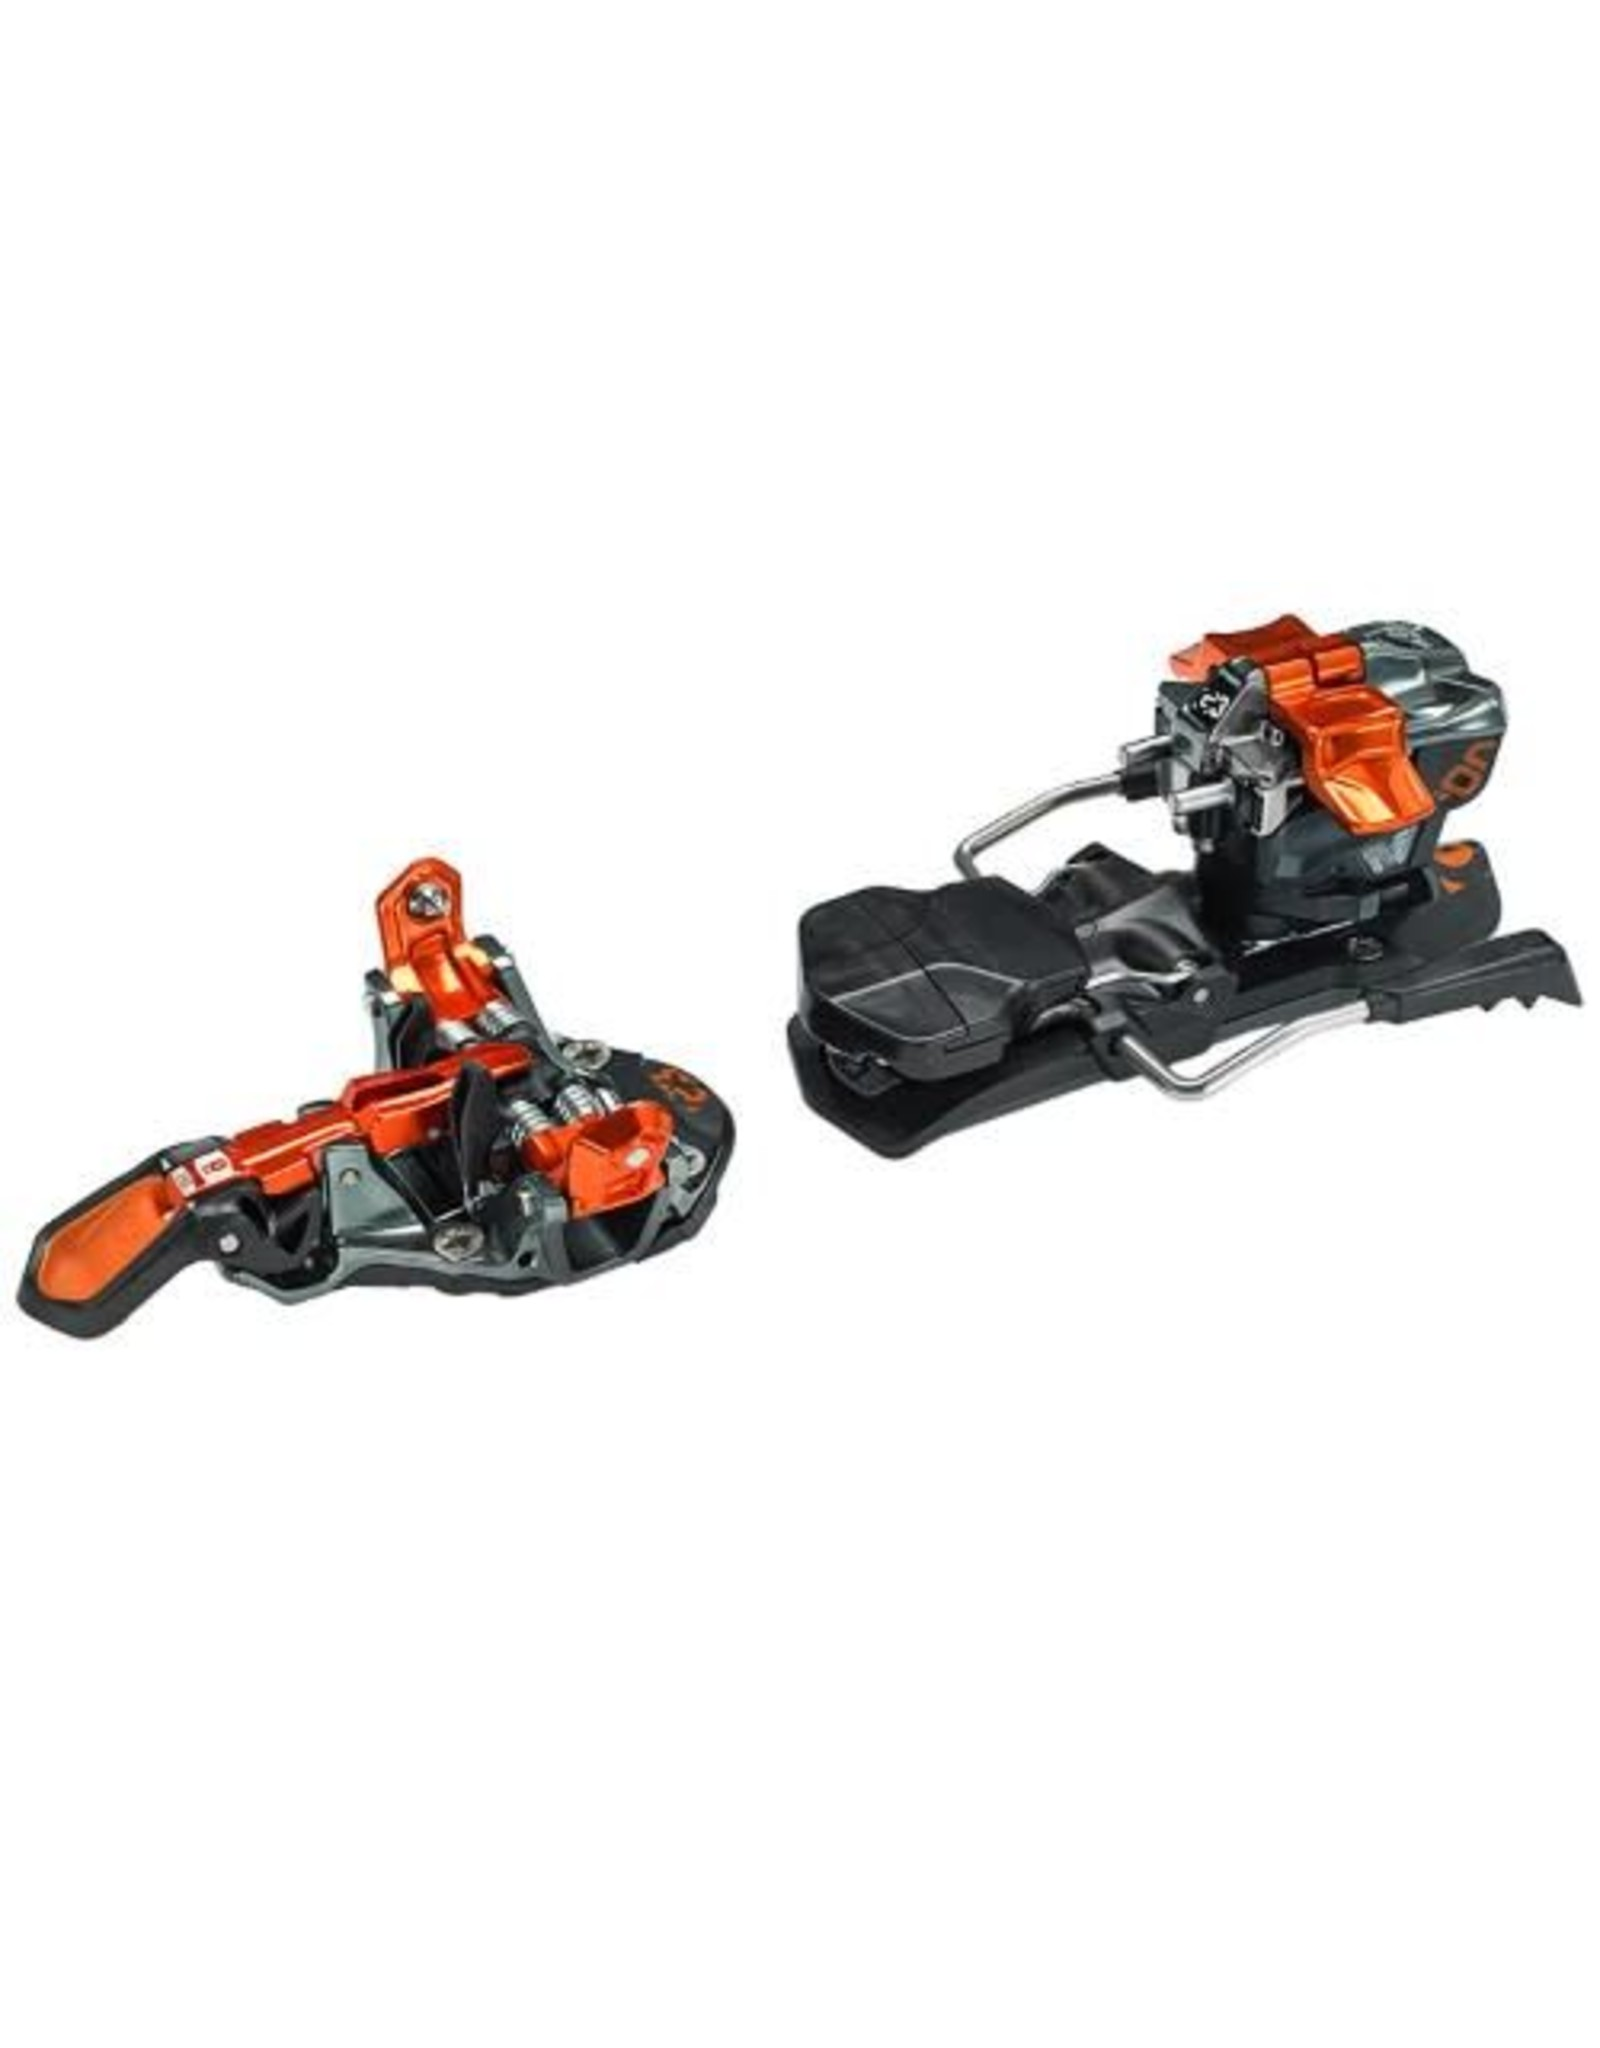 G3 G3 Ion 10 Binding with Brakes